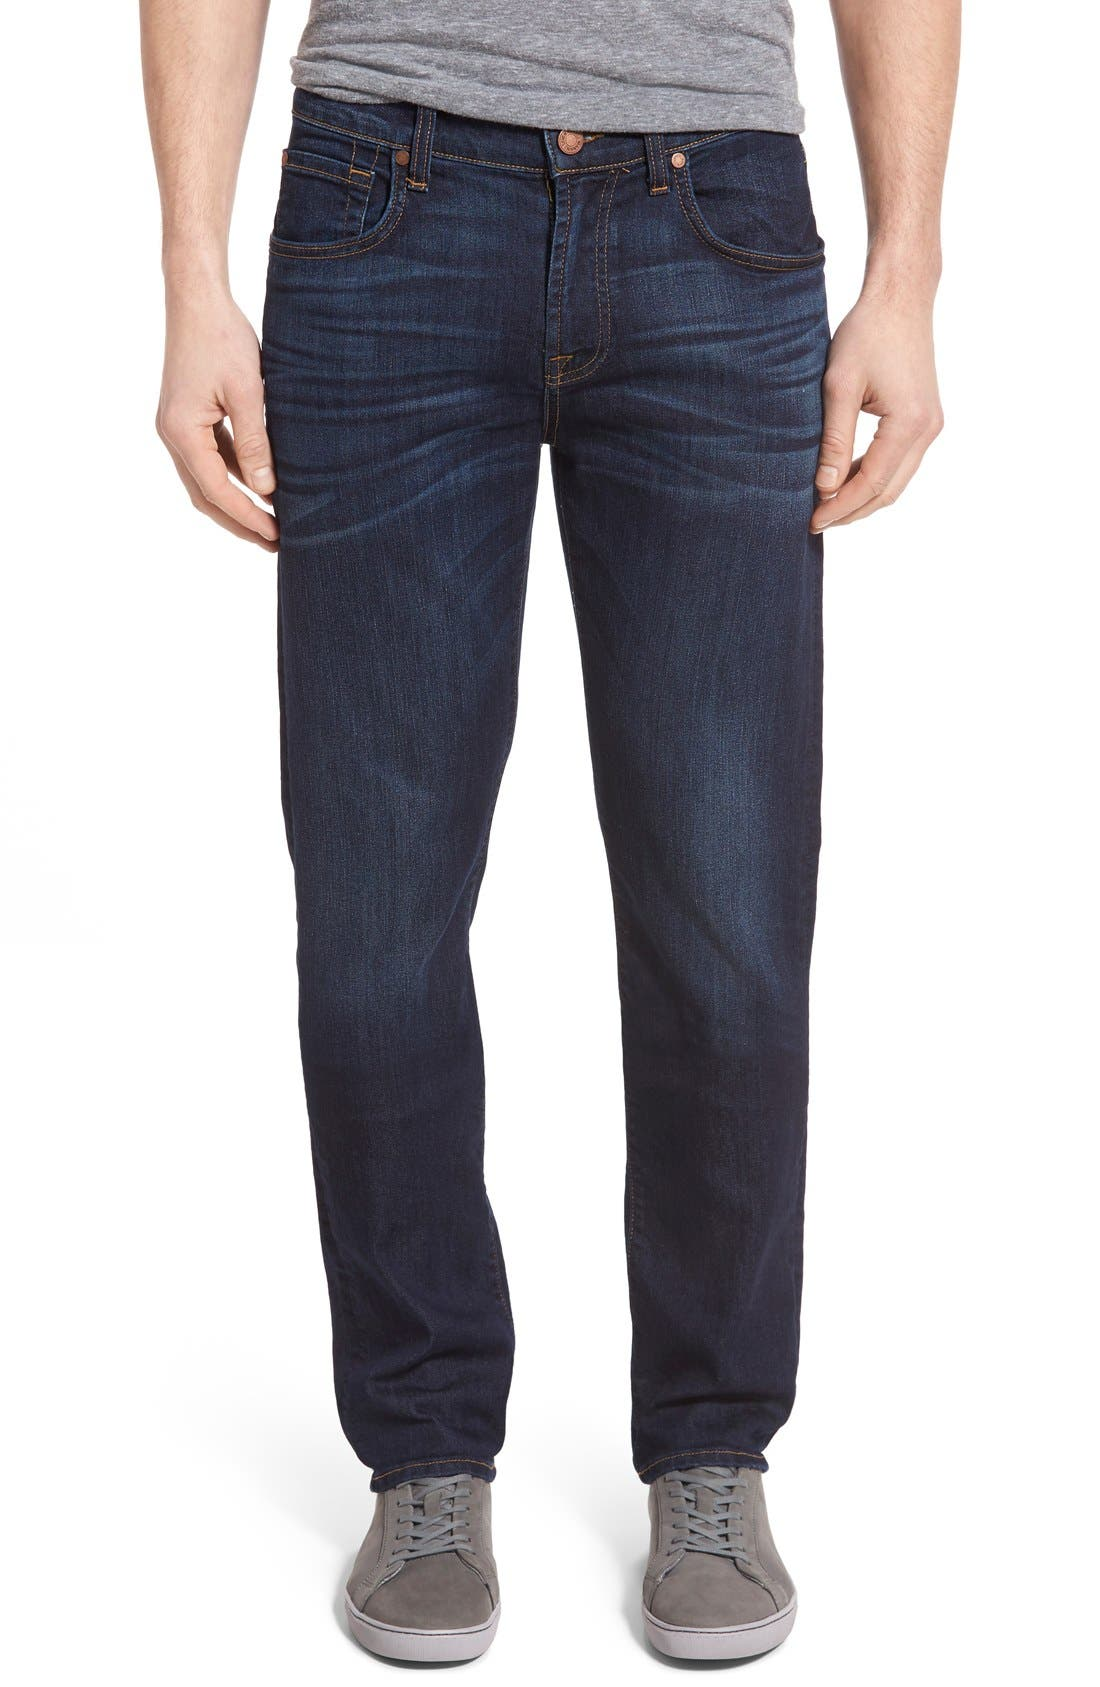 Men's 7 For All Mankind The Straight Airweft Slim Straight Leg Jeans